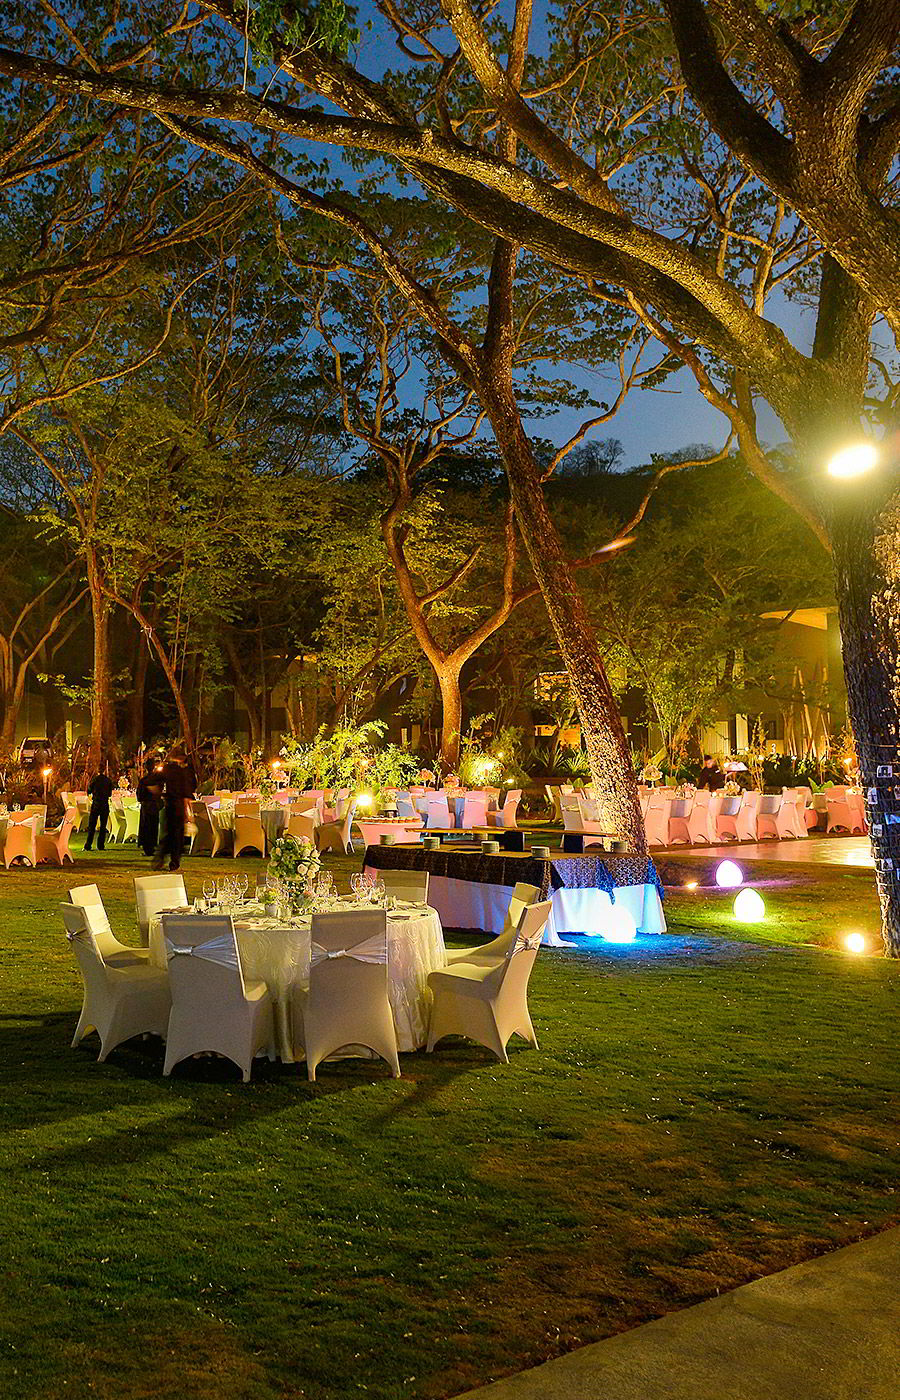 marriott el mangroove guanacaste costa rica honeymoon destination wedding venue wedding outdoor table setting night mangrove trees